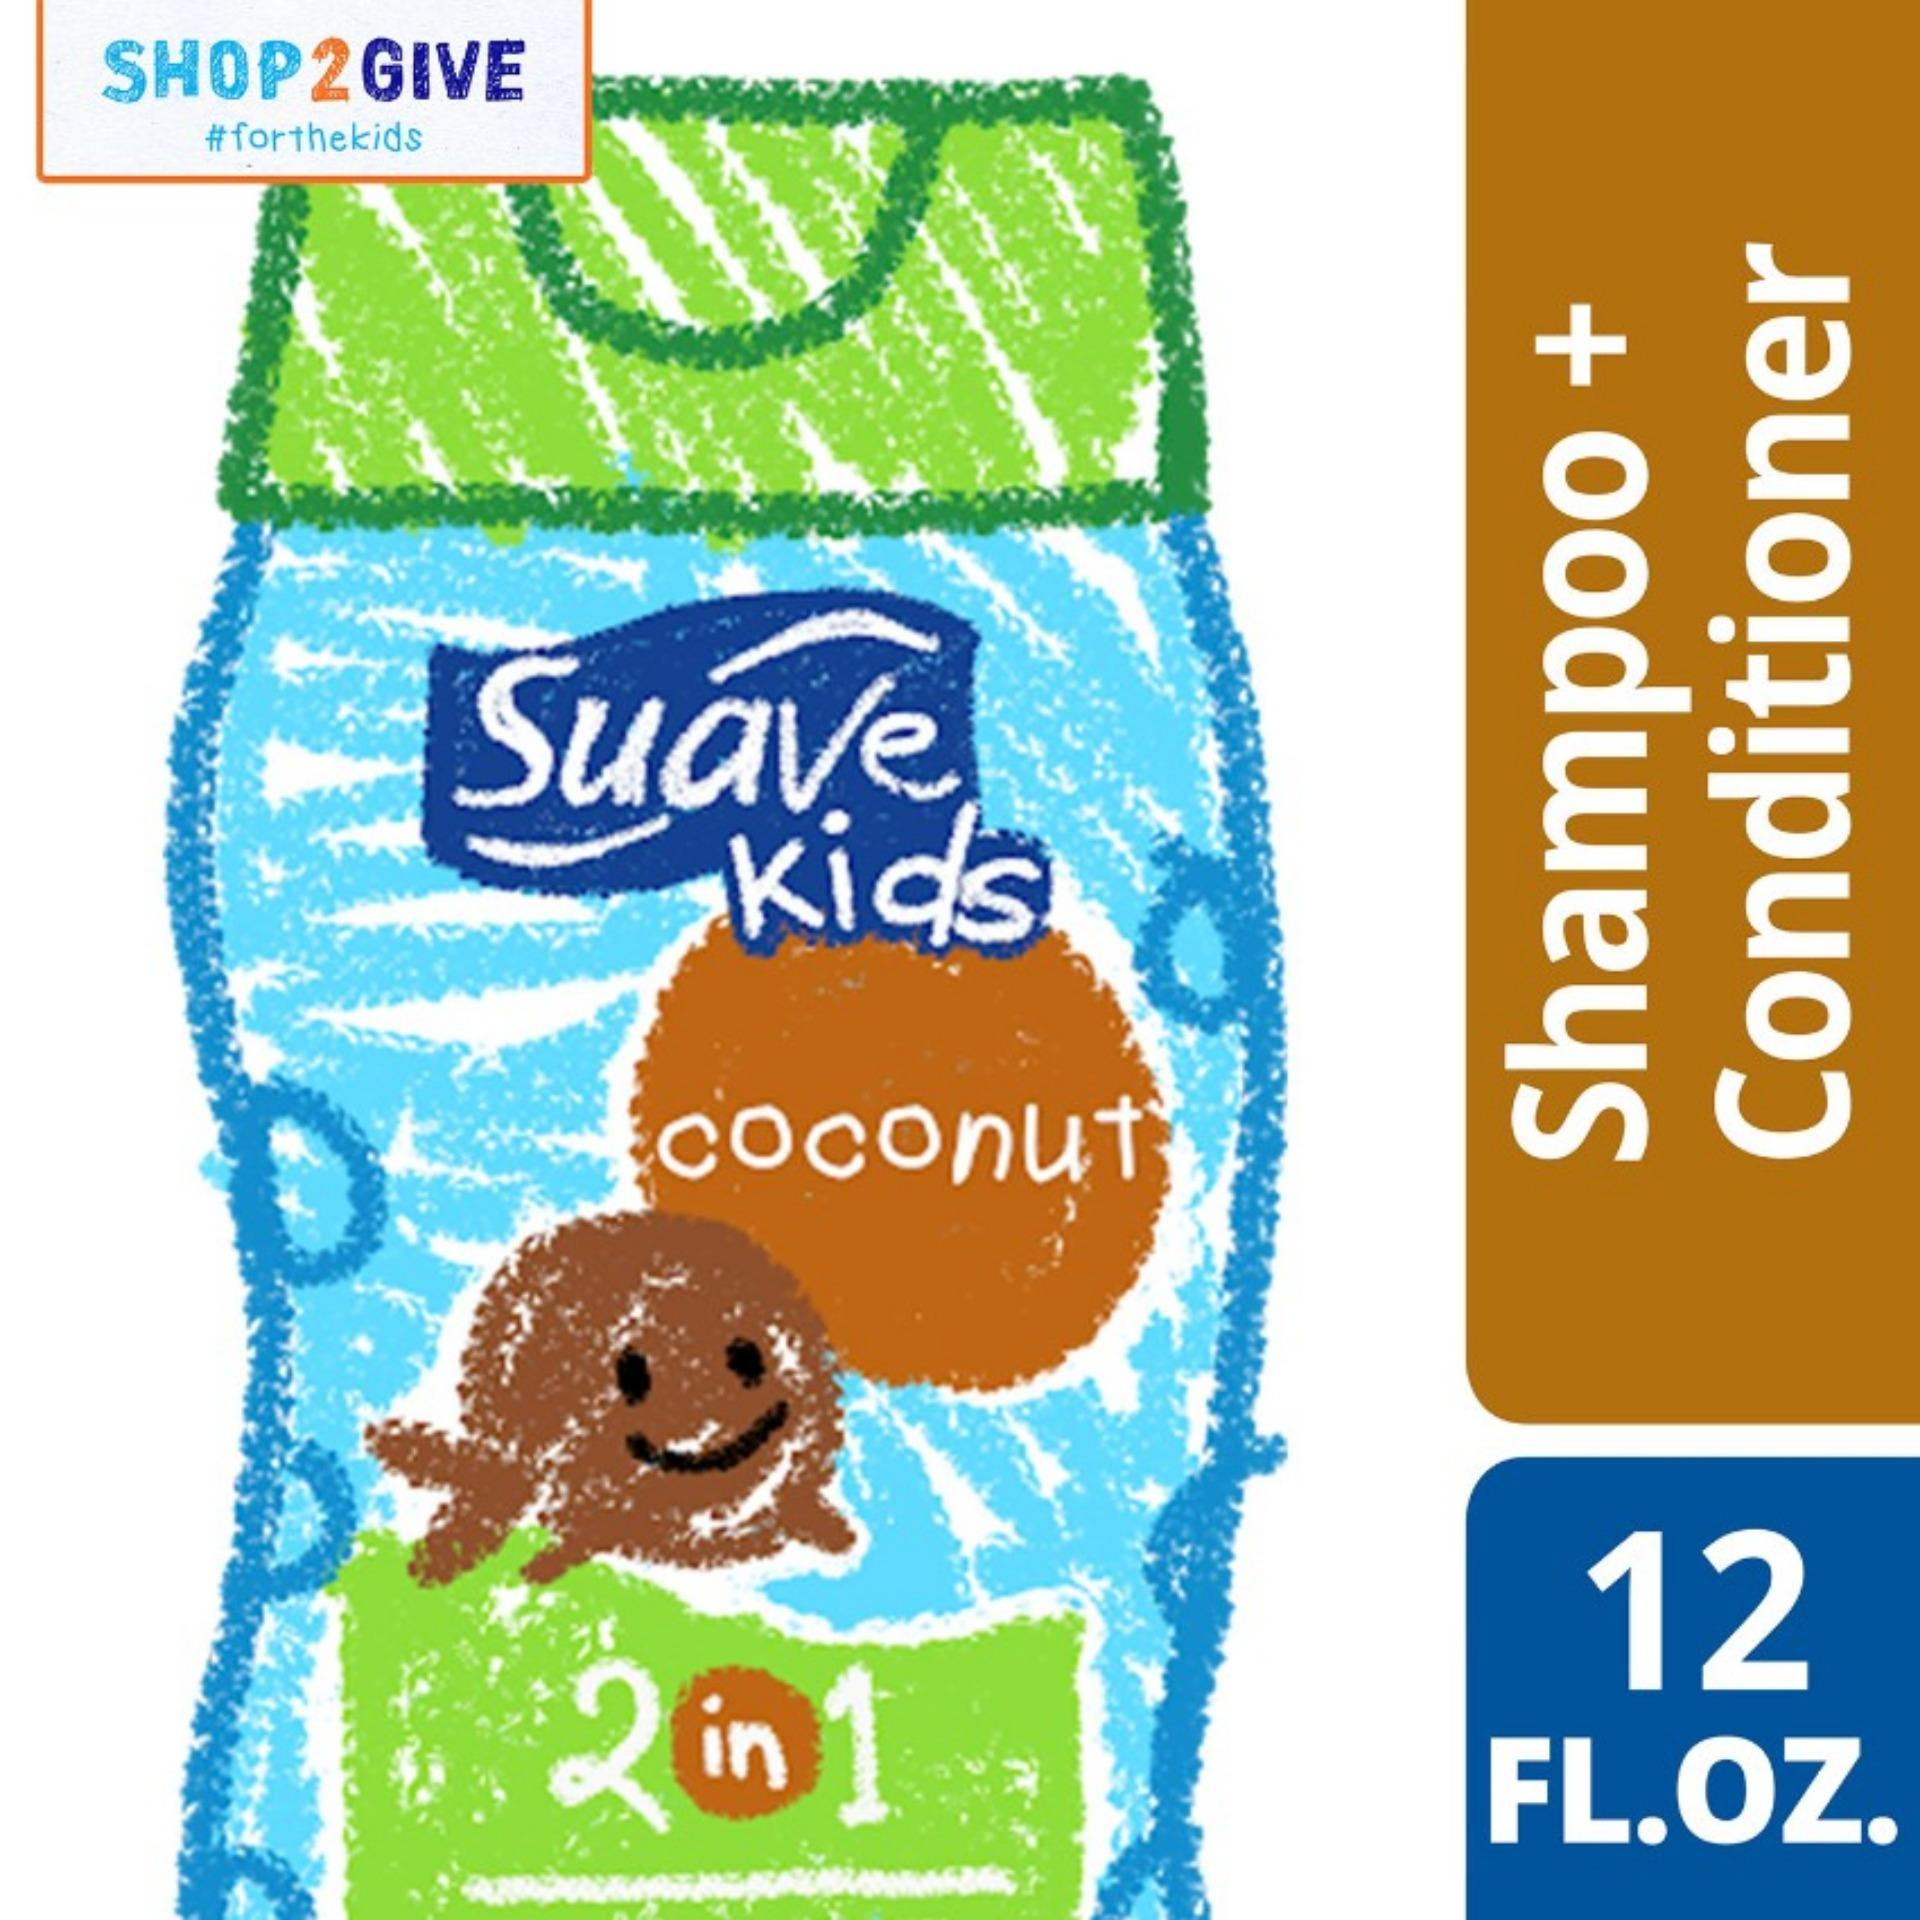 Buy Sell Cheapest Suave 3in1 Kids Best Quality Product Deals 2 In 1 Smoothers Shampoo And Conditioner 665 Ml 2in1 Coconut 12oz